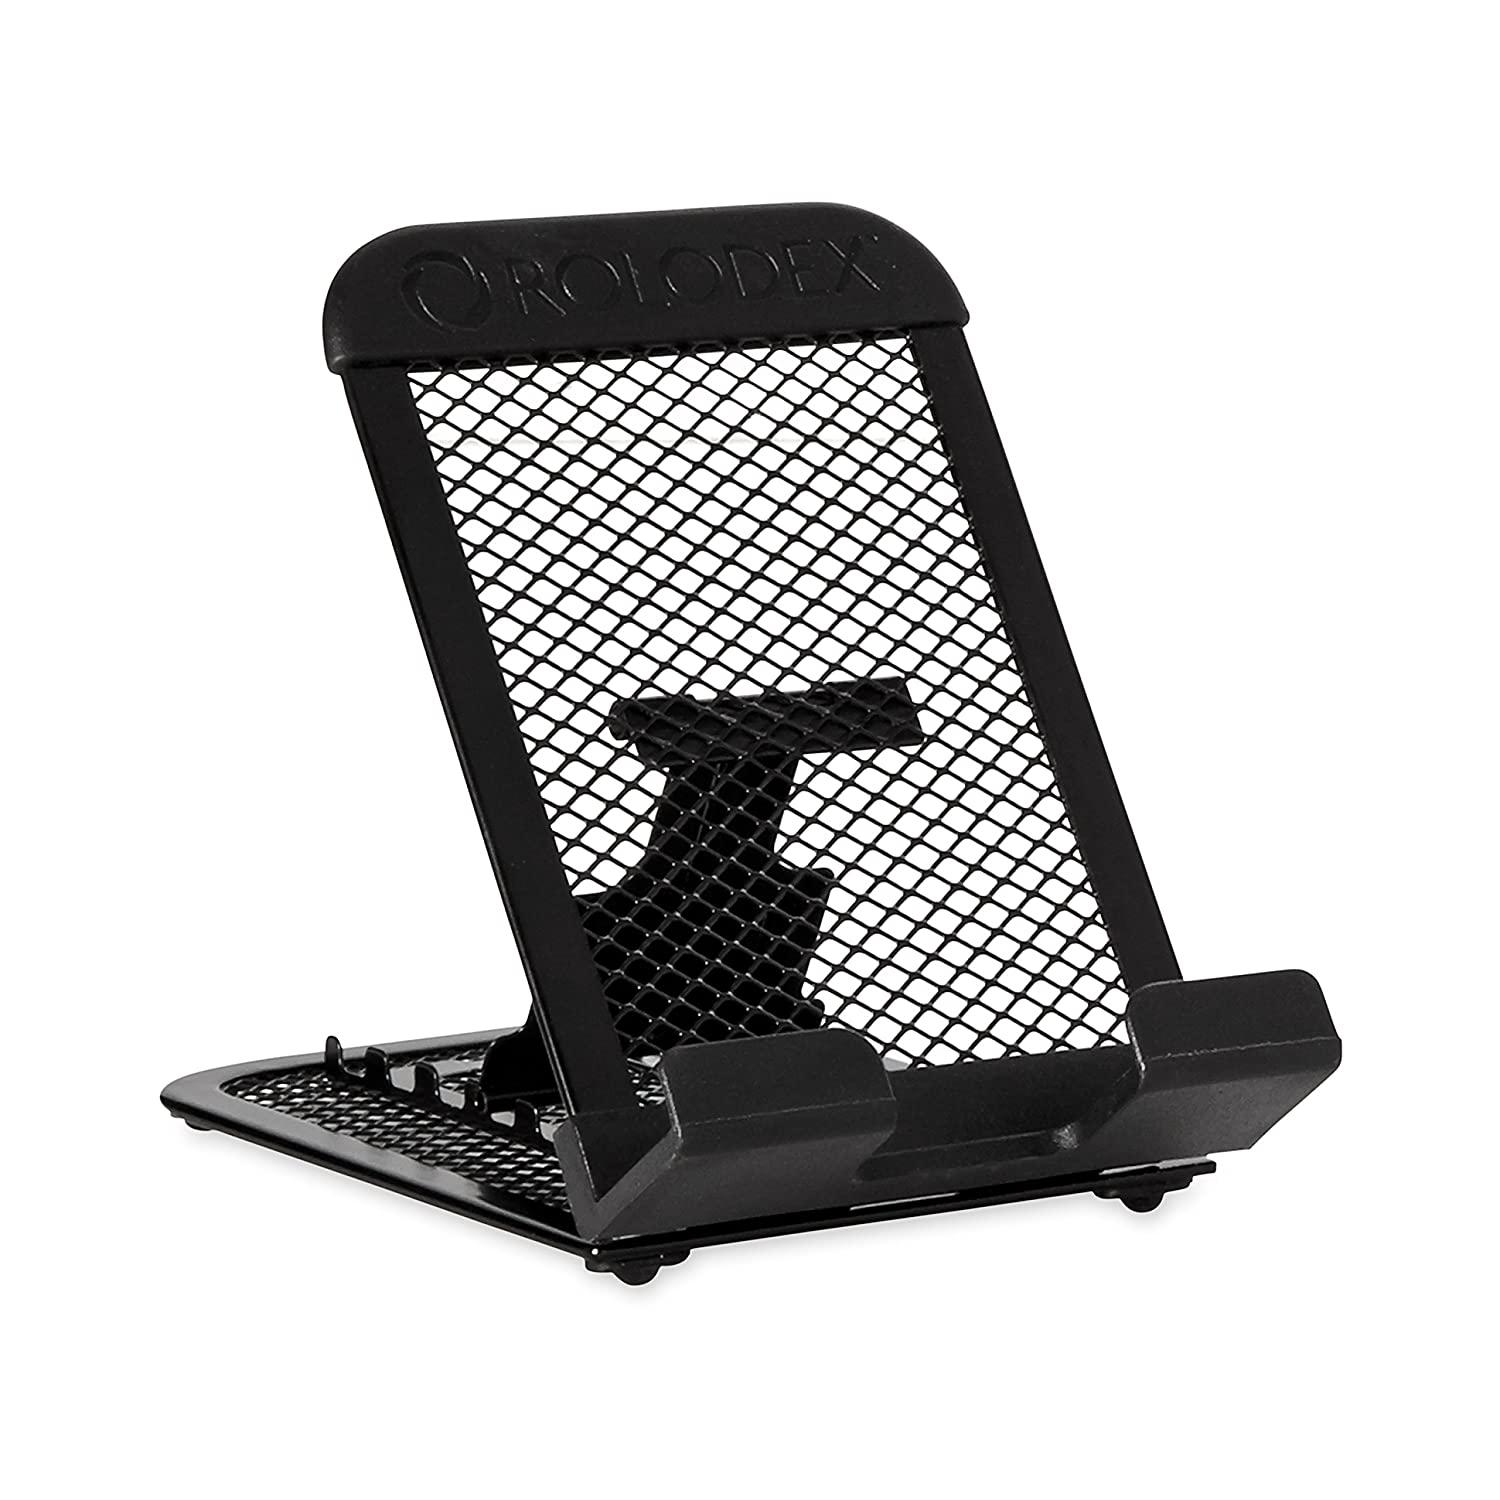 Top 10 Best Adjustable Stands For Laptops And Notebooks